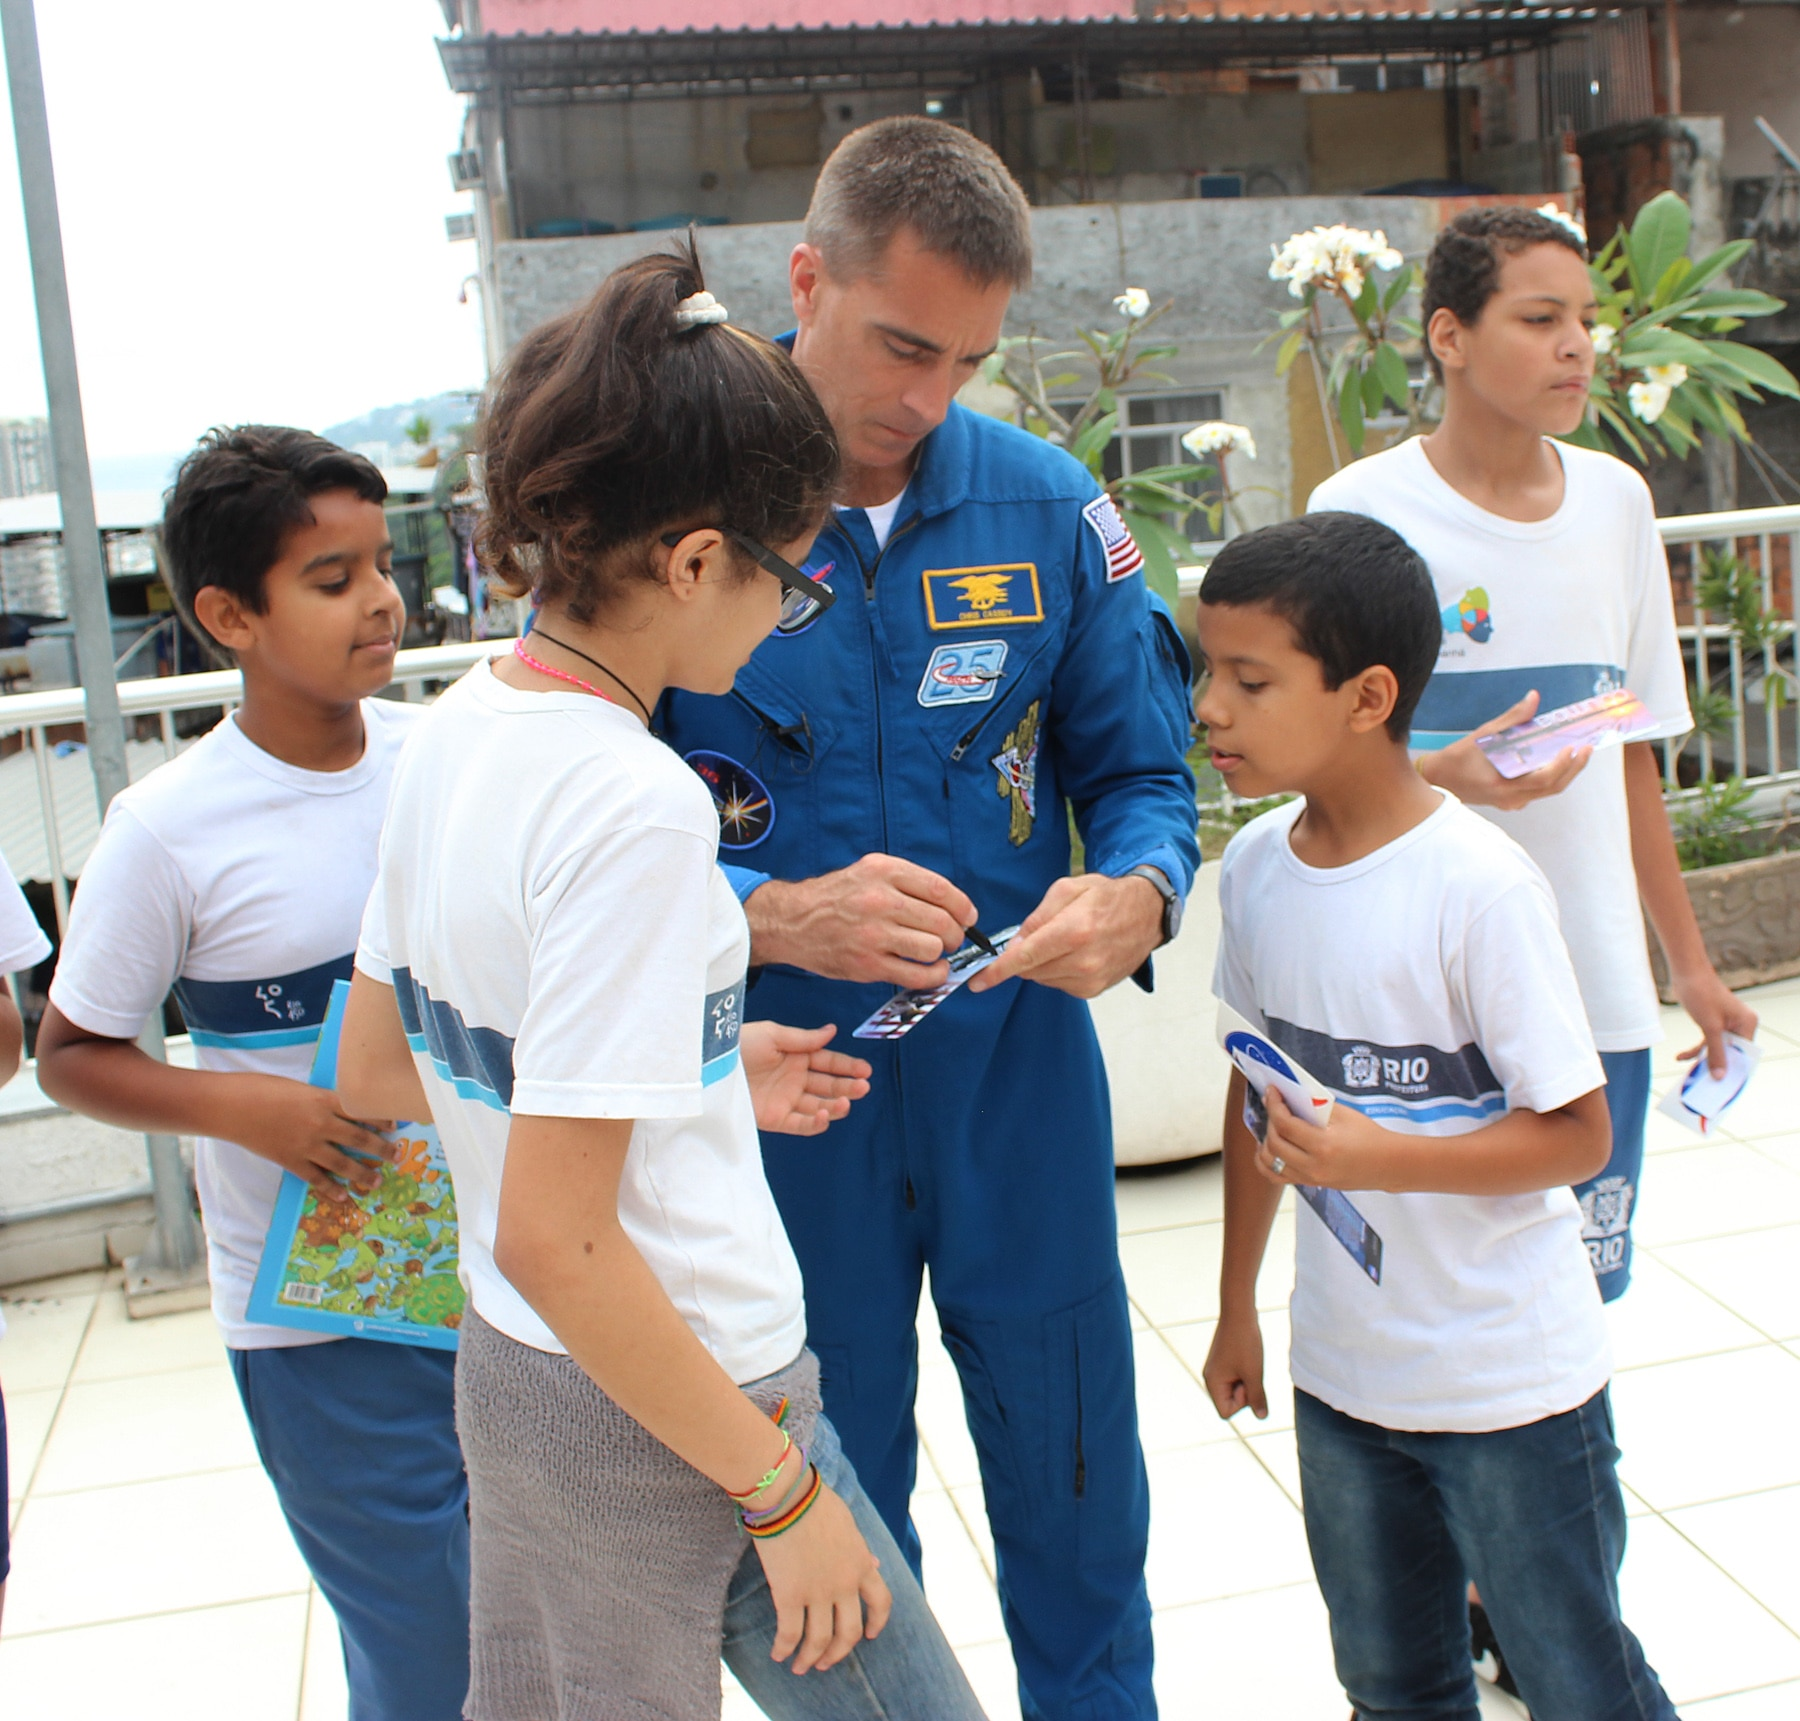 Chris Cassidy, in blue jumpsuit, signing autographs for children (Flavio Carvalho)